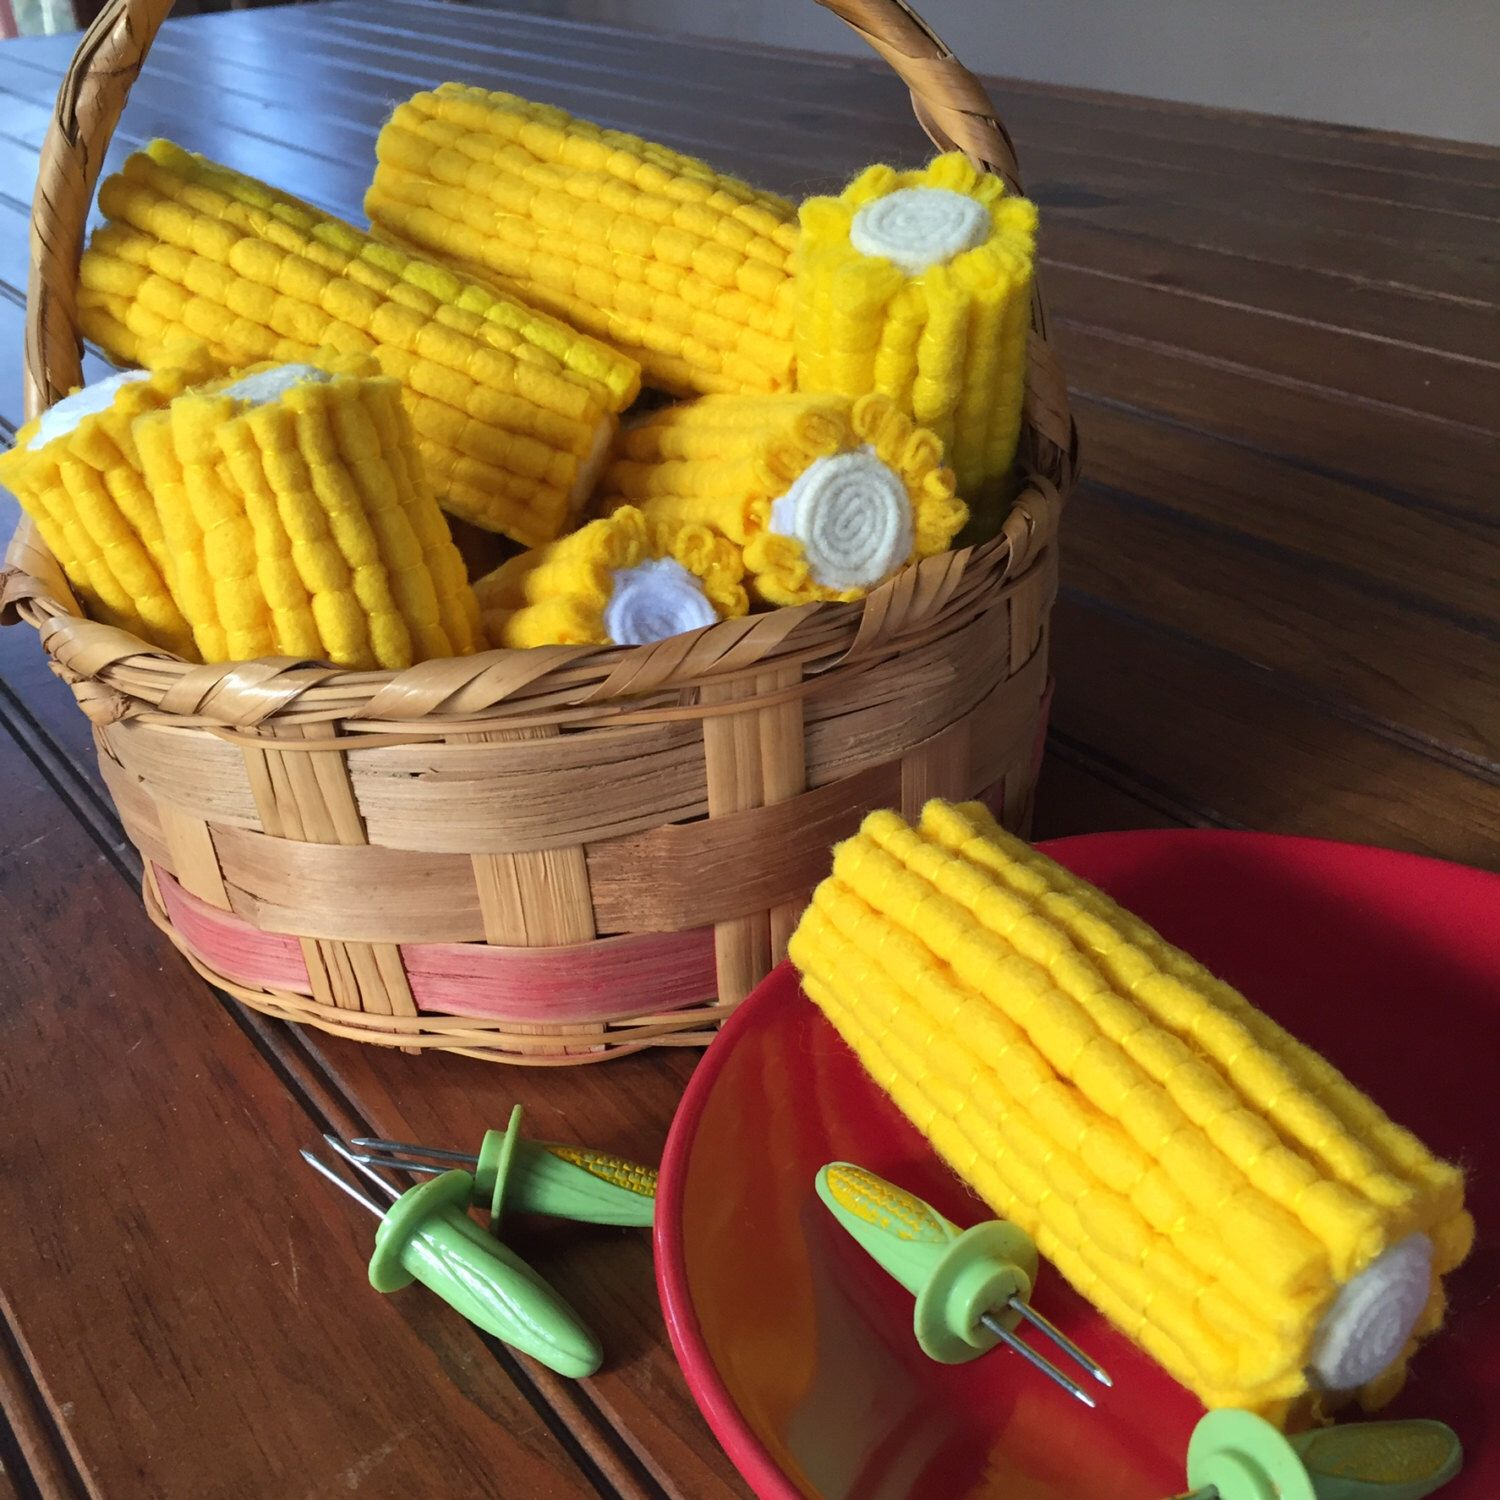 Felt corn on the cob ready for play kitchens. Felt Food by MarmiesMarket on Etsy https://www.etsy.com/listing/196502157/felt-corn-on-the-cob-ready-for-play